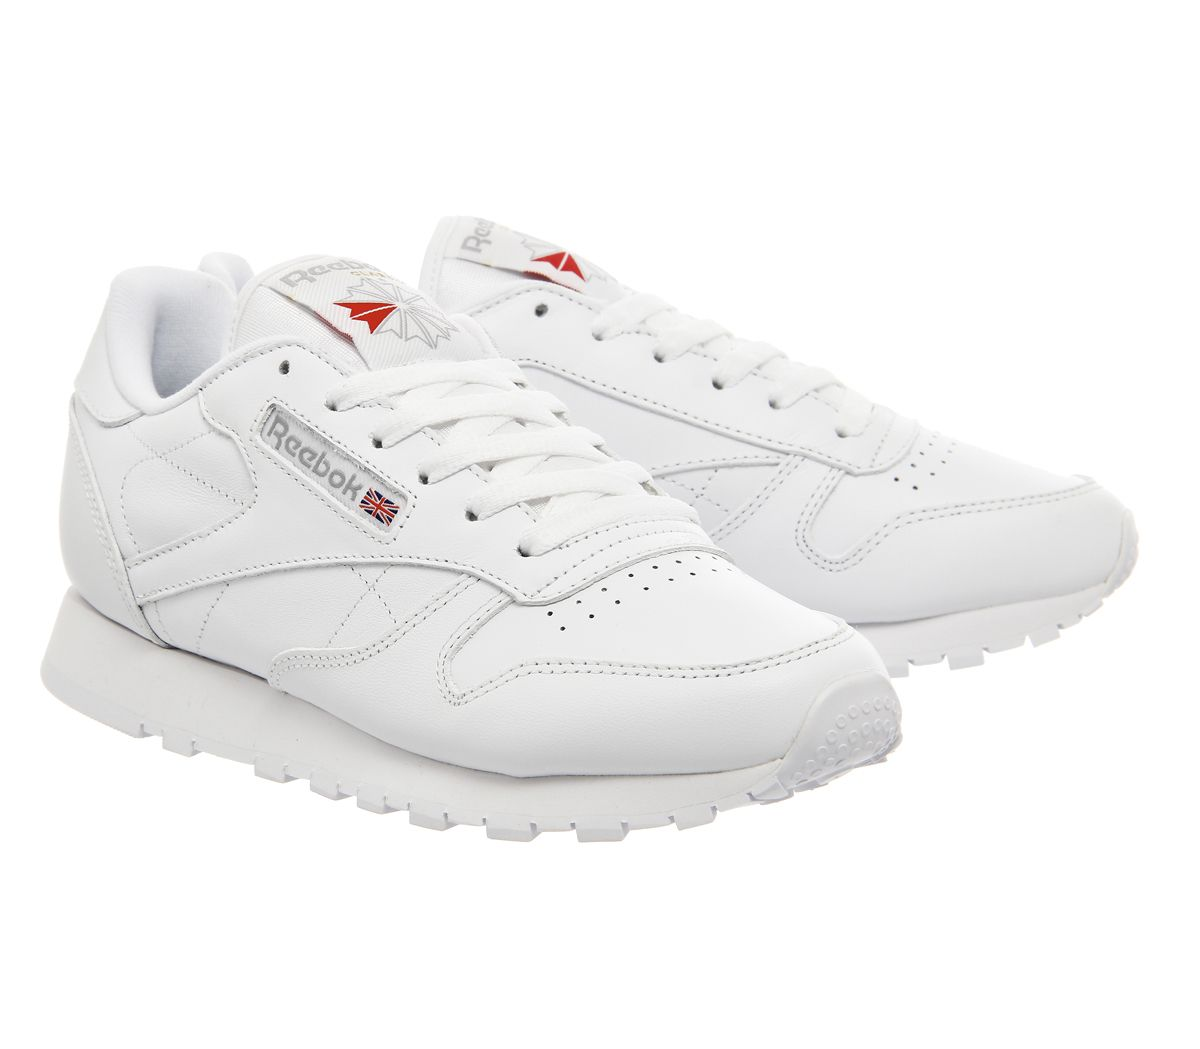 42eafdb51ec Womens-Reebok-Classic-Leather-Trainers-White-Leather thumbnail 19